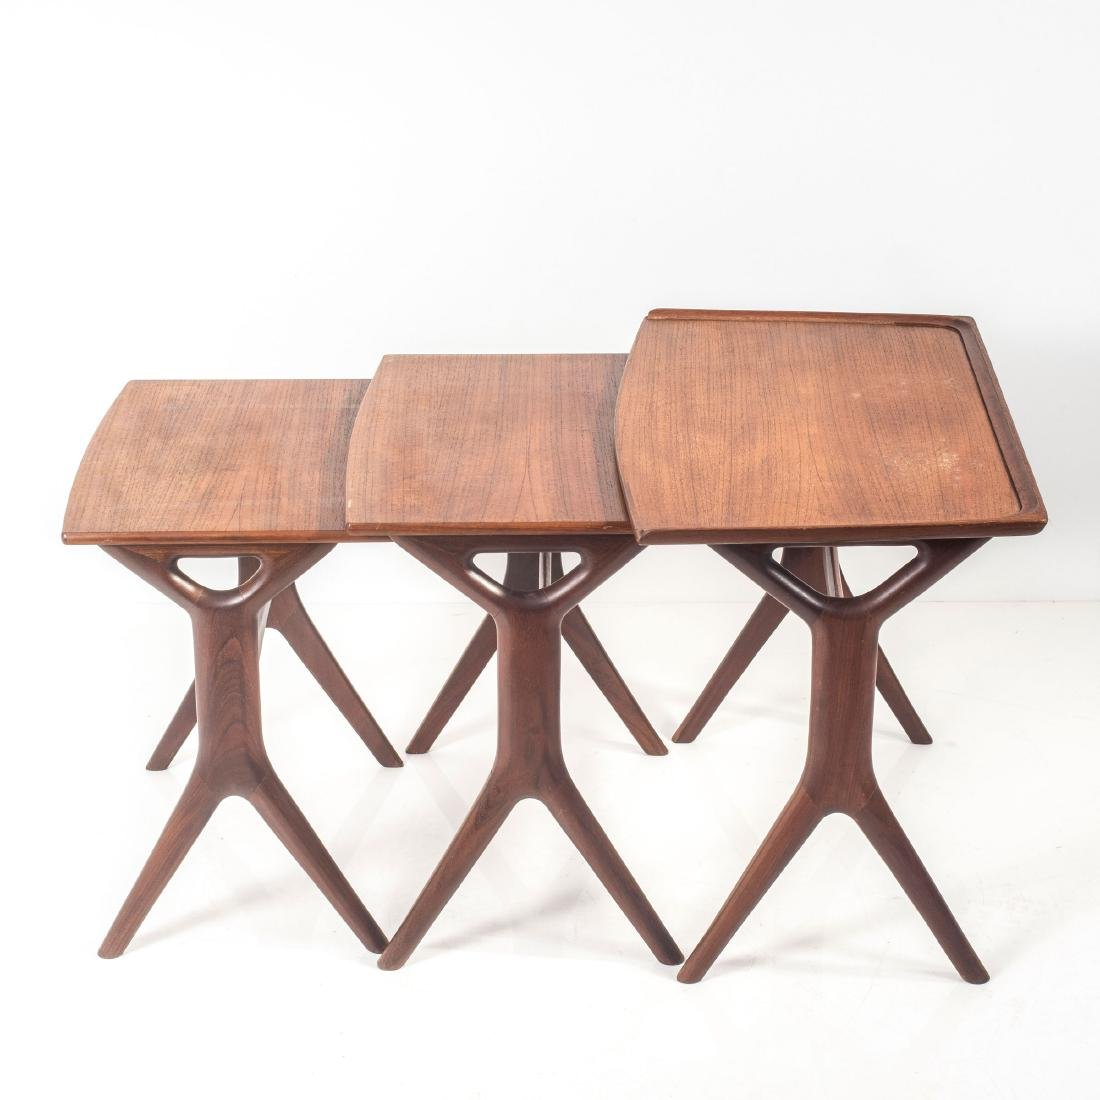 Three nesting tables, c. 1958 - 3